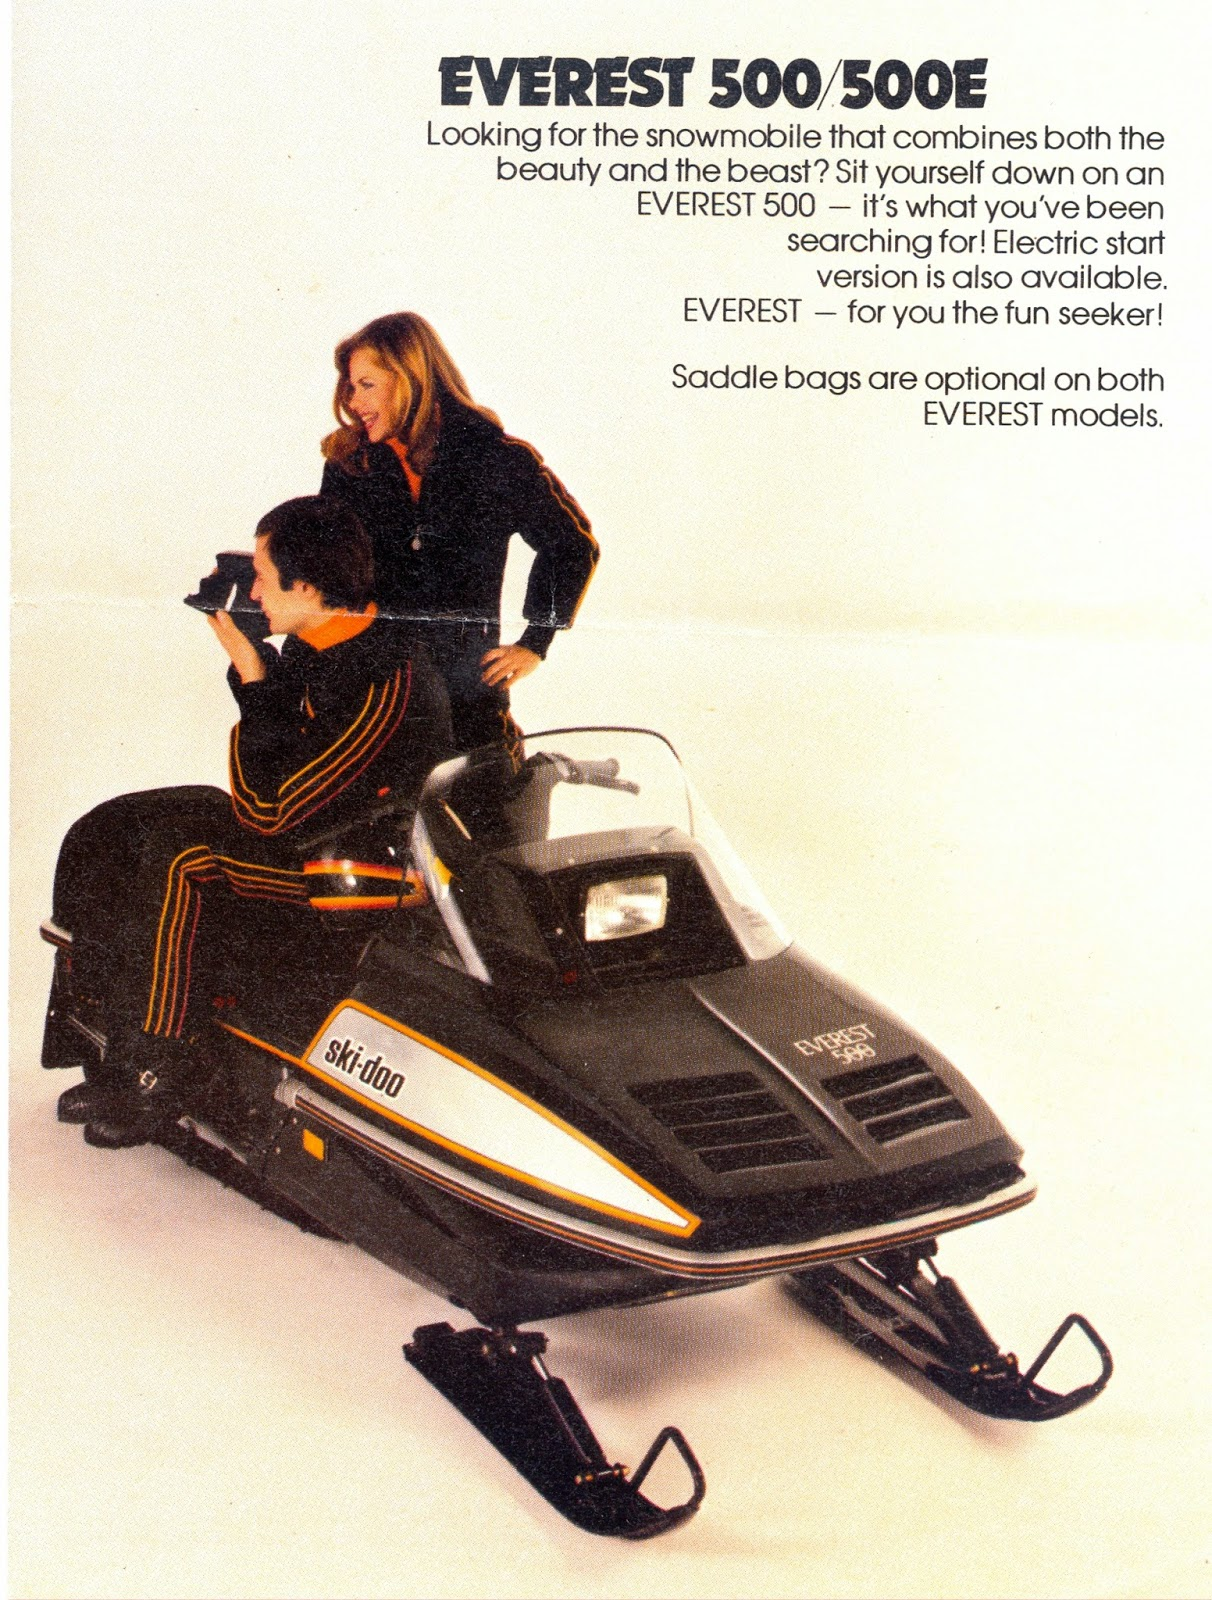 CLASSIC SNOWMOBILES OF THE PAST: 1982 SKI-DOO EVEREST 500